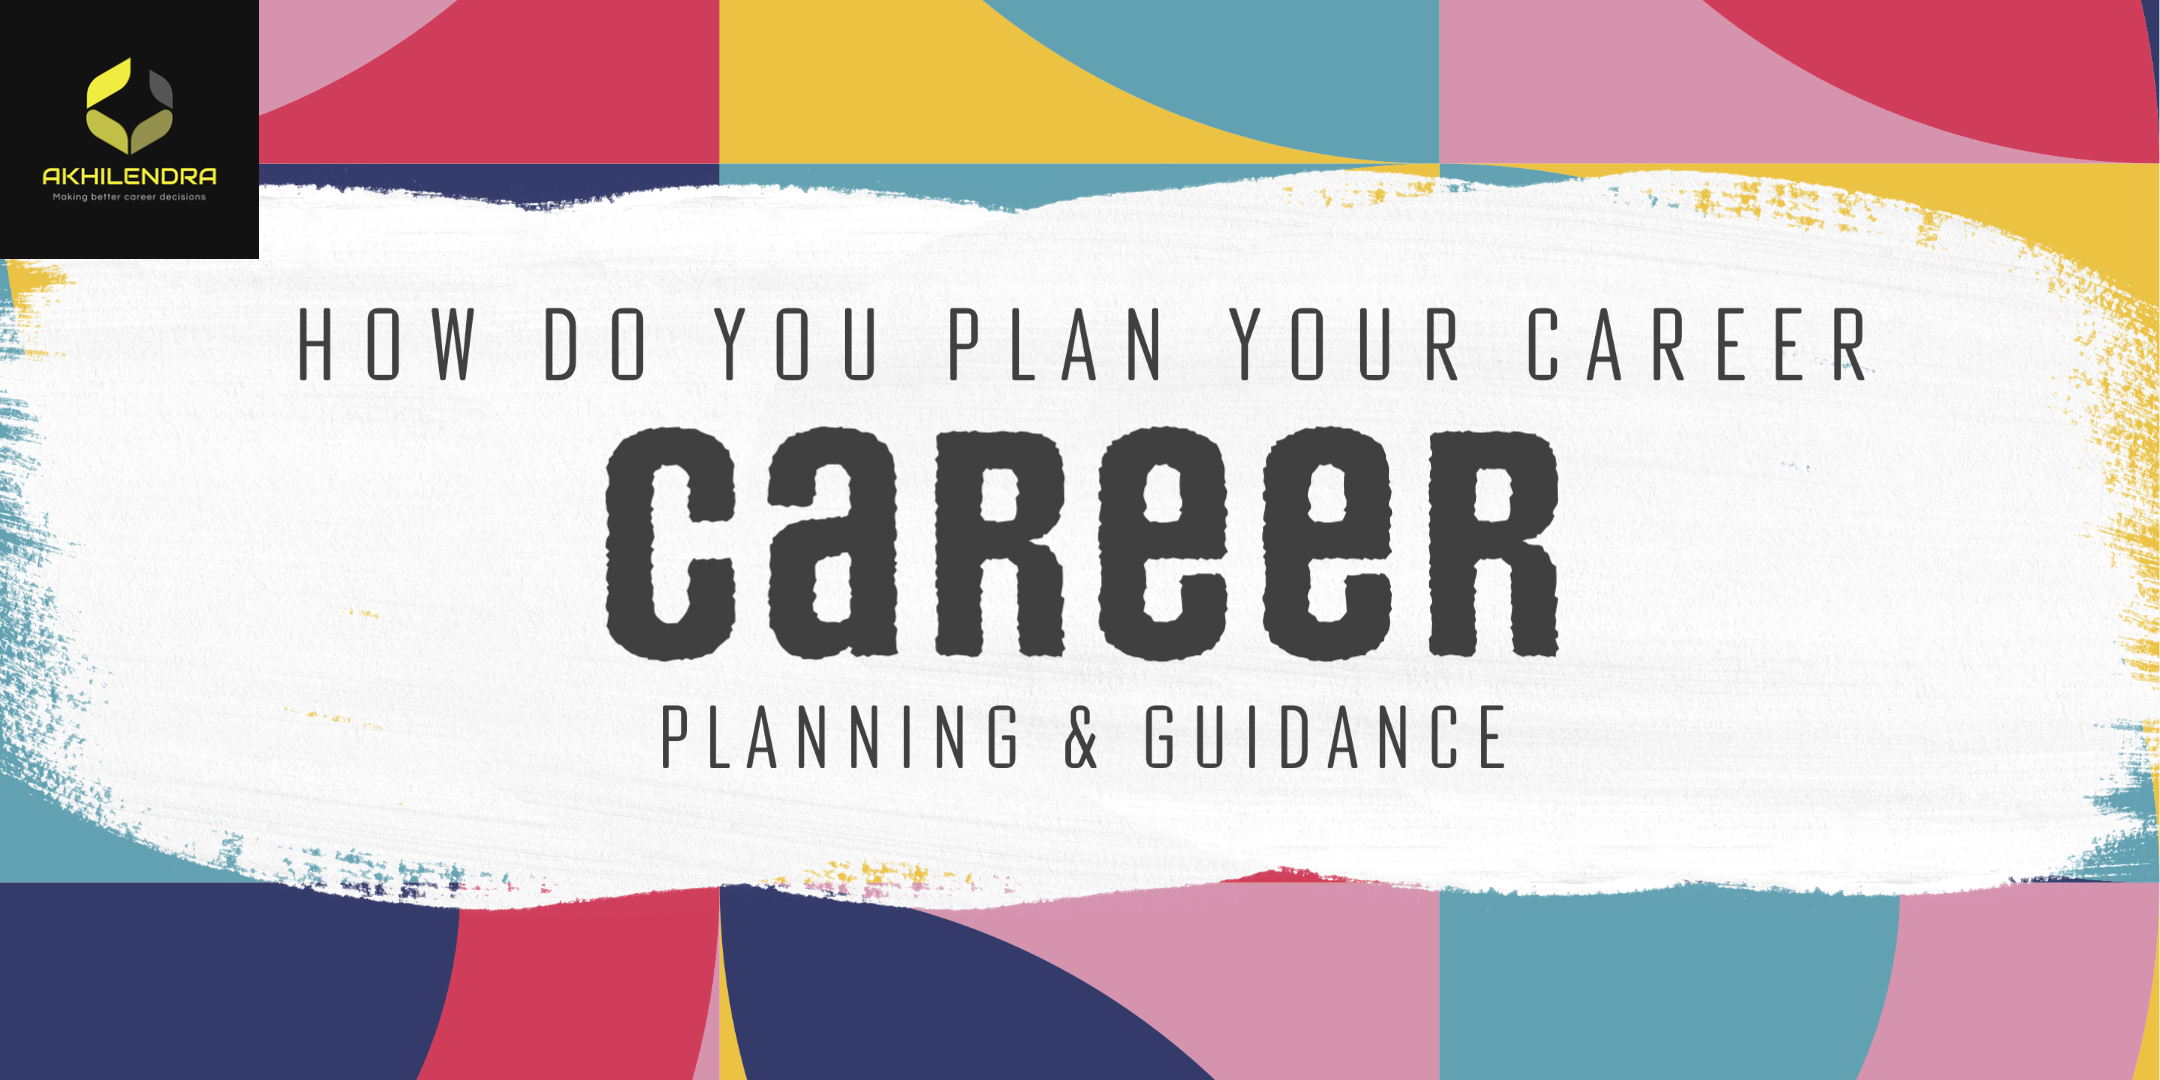 Career counselling, career planning & career guidance